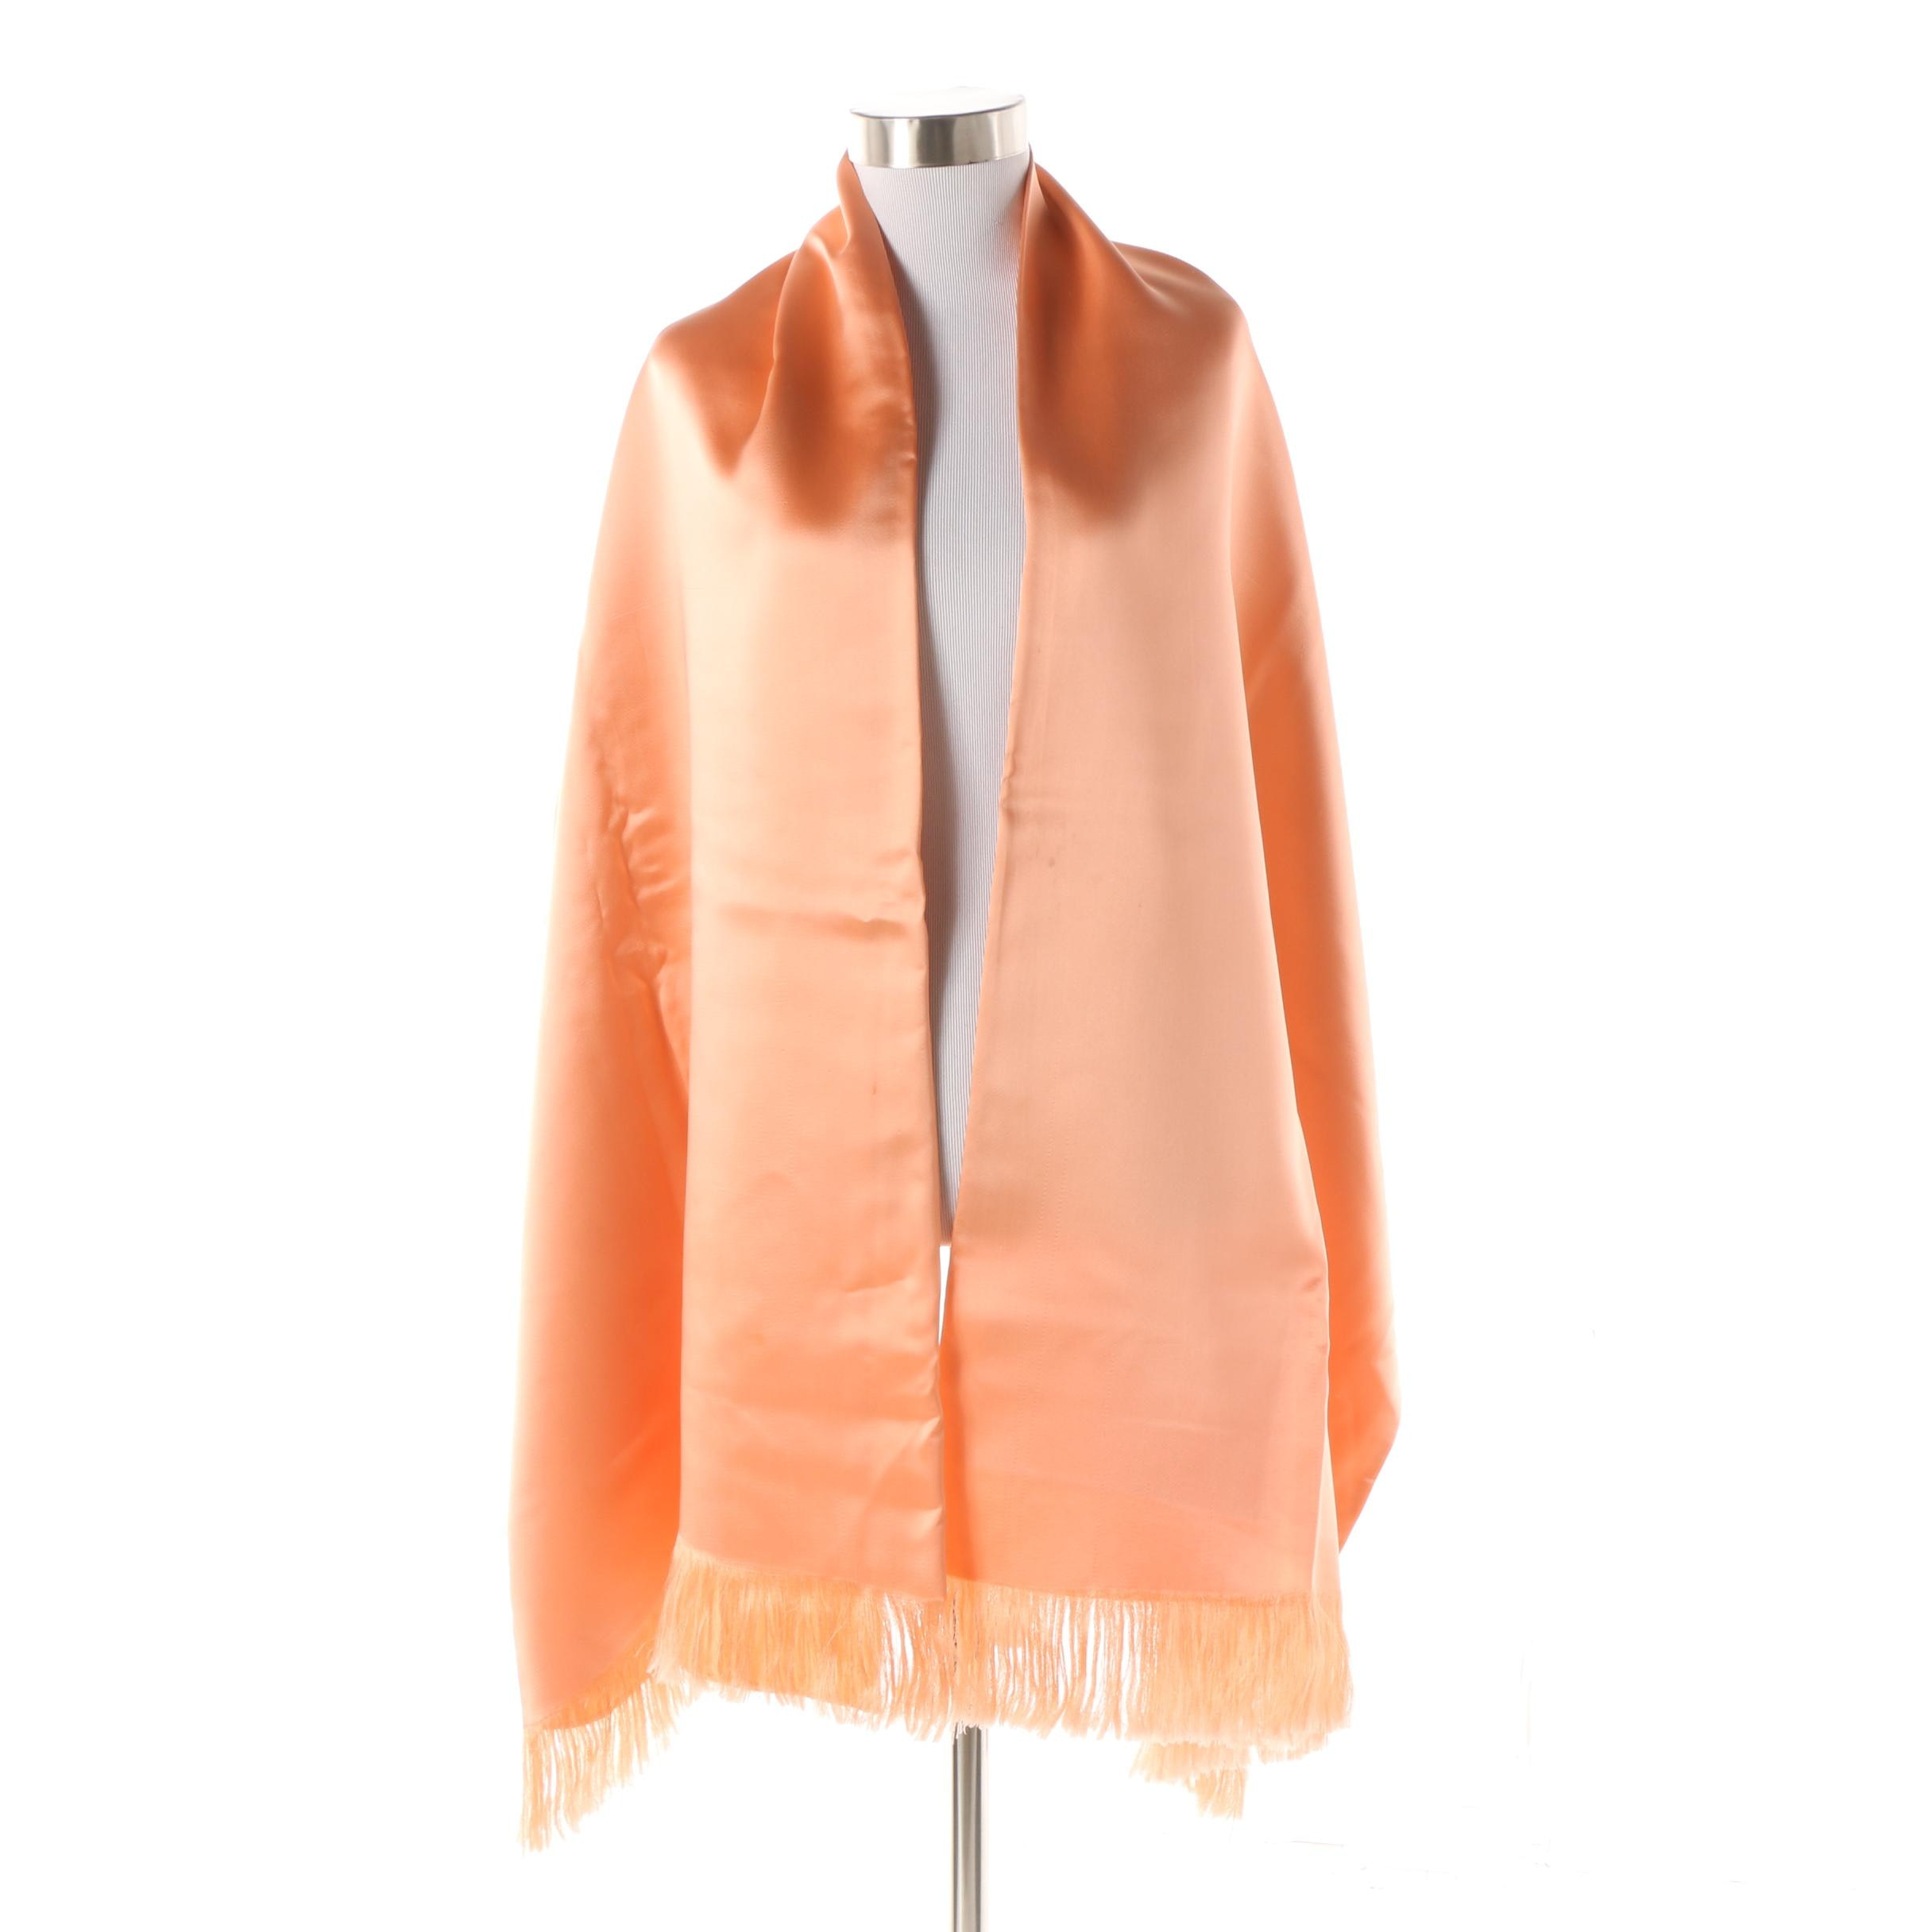 Blush Peach Satin Shawl with Fringe